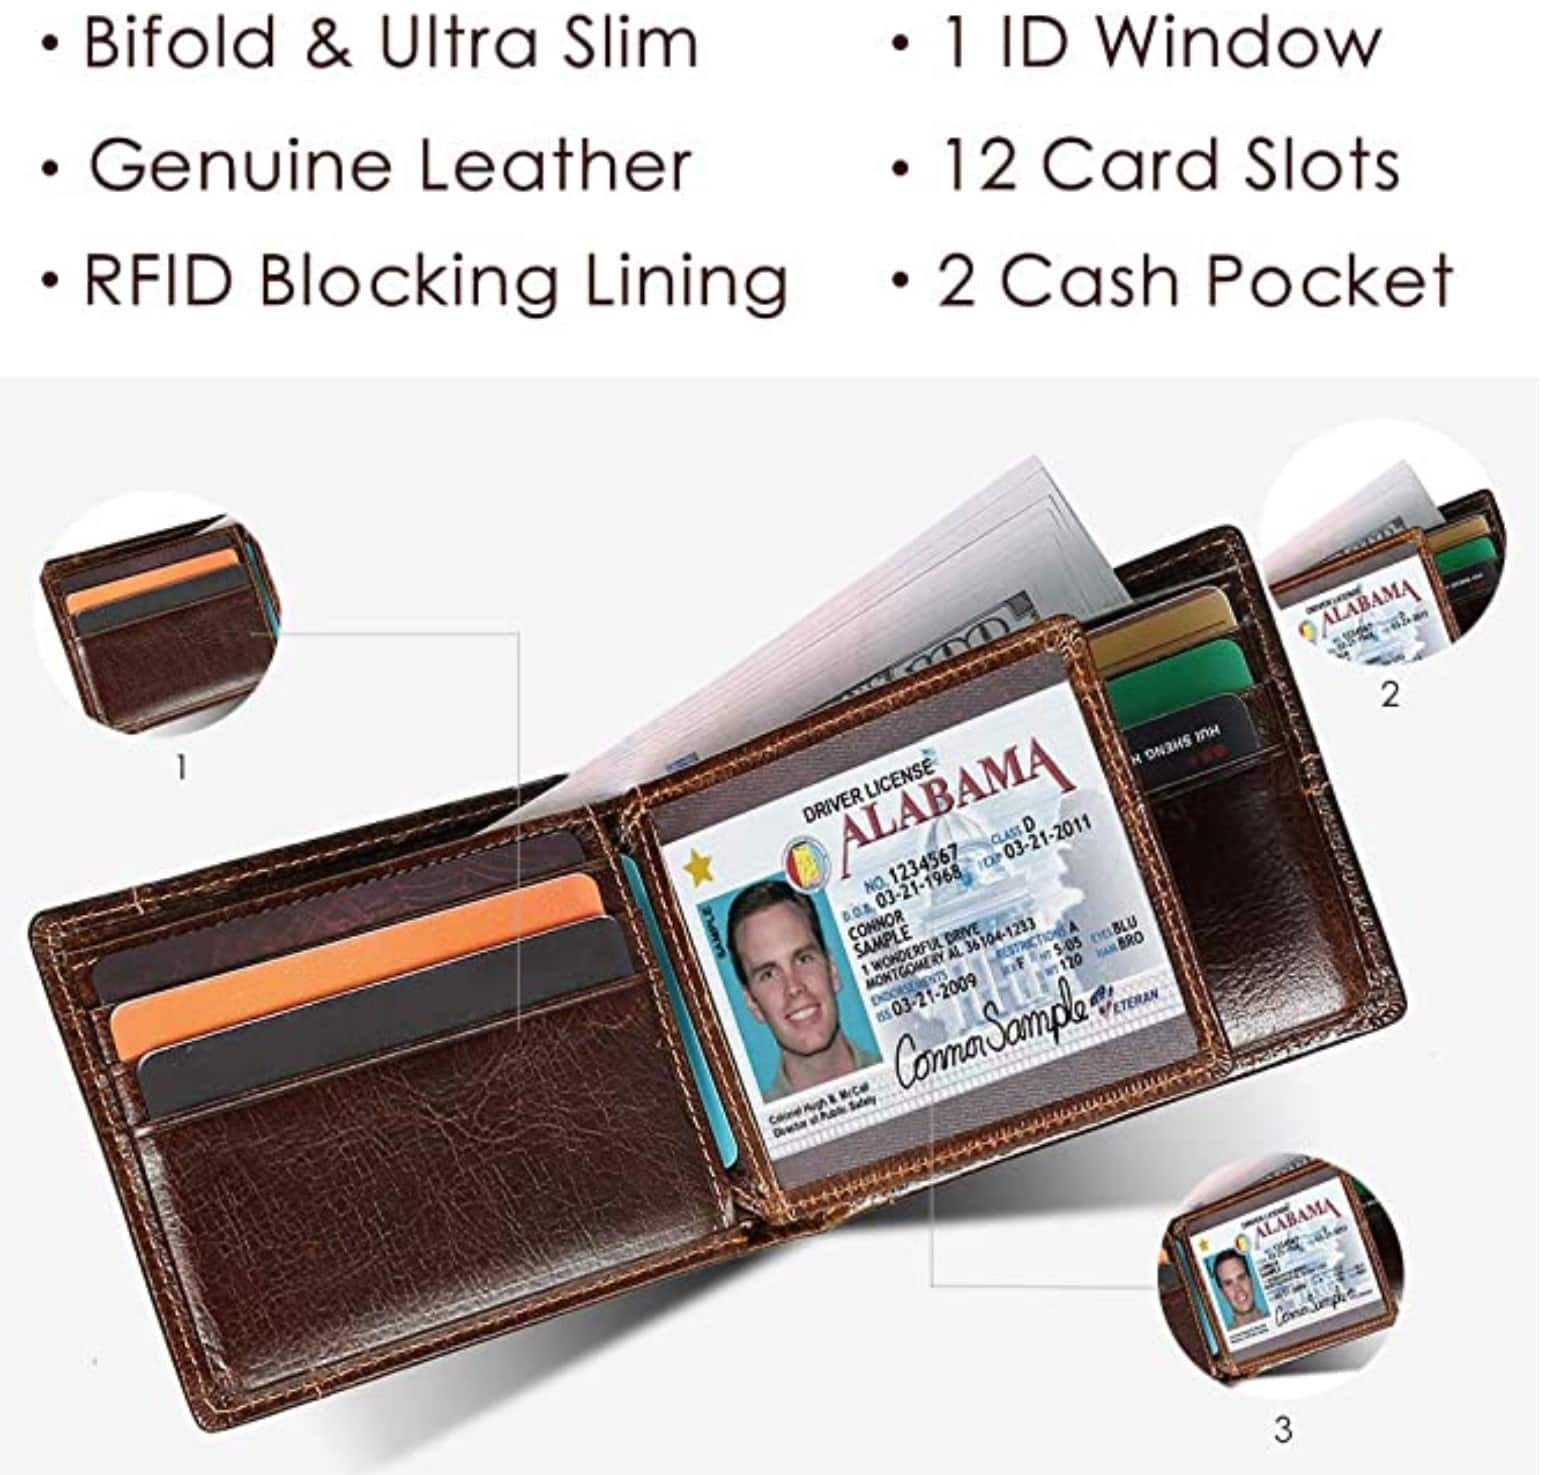 Mens Wallet Slim Genuine Leather RFID ($8.23-$9.89 AC)Thin Bifold Wallets For Men Minimalist Front Pocket ID Window 12 Card Holders $9.88